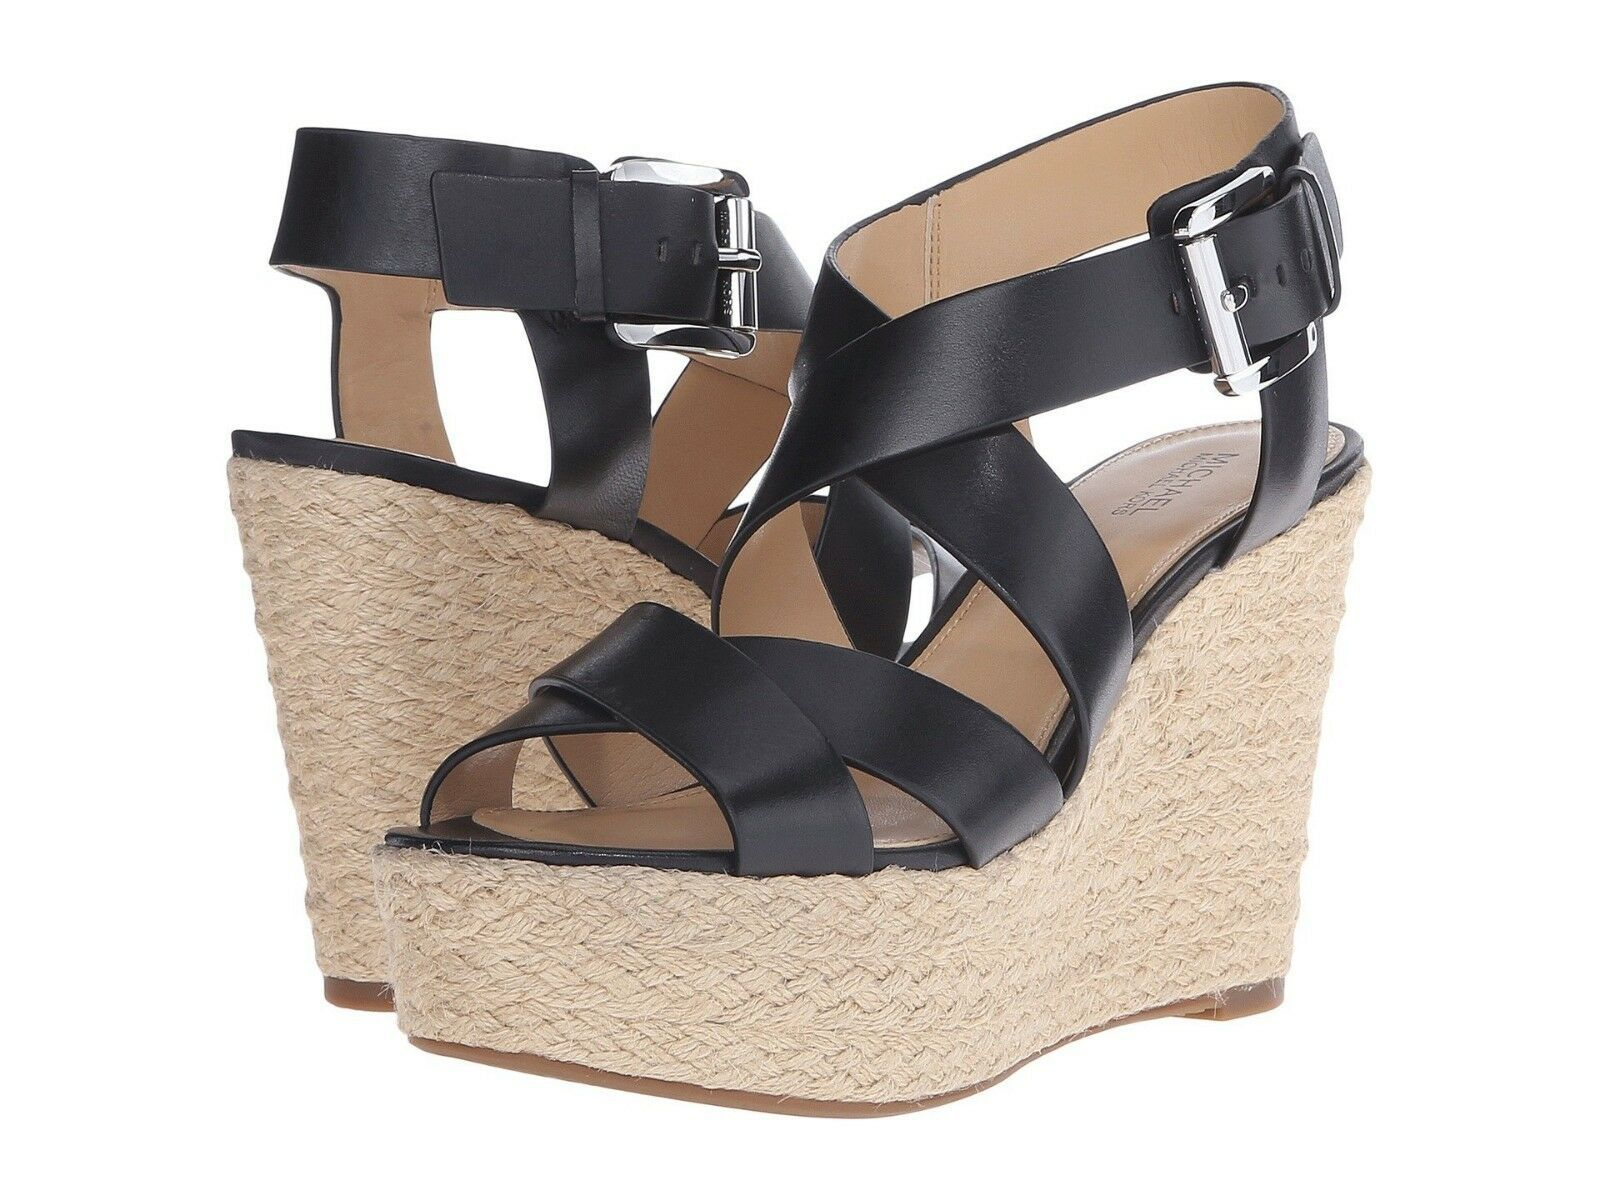 Primary image for Michael Kors Celia Wedge Women's/Leather/Black/Silver(GP16A)Size:US 9.5 M